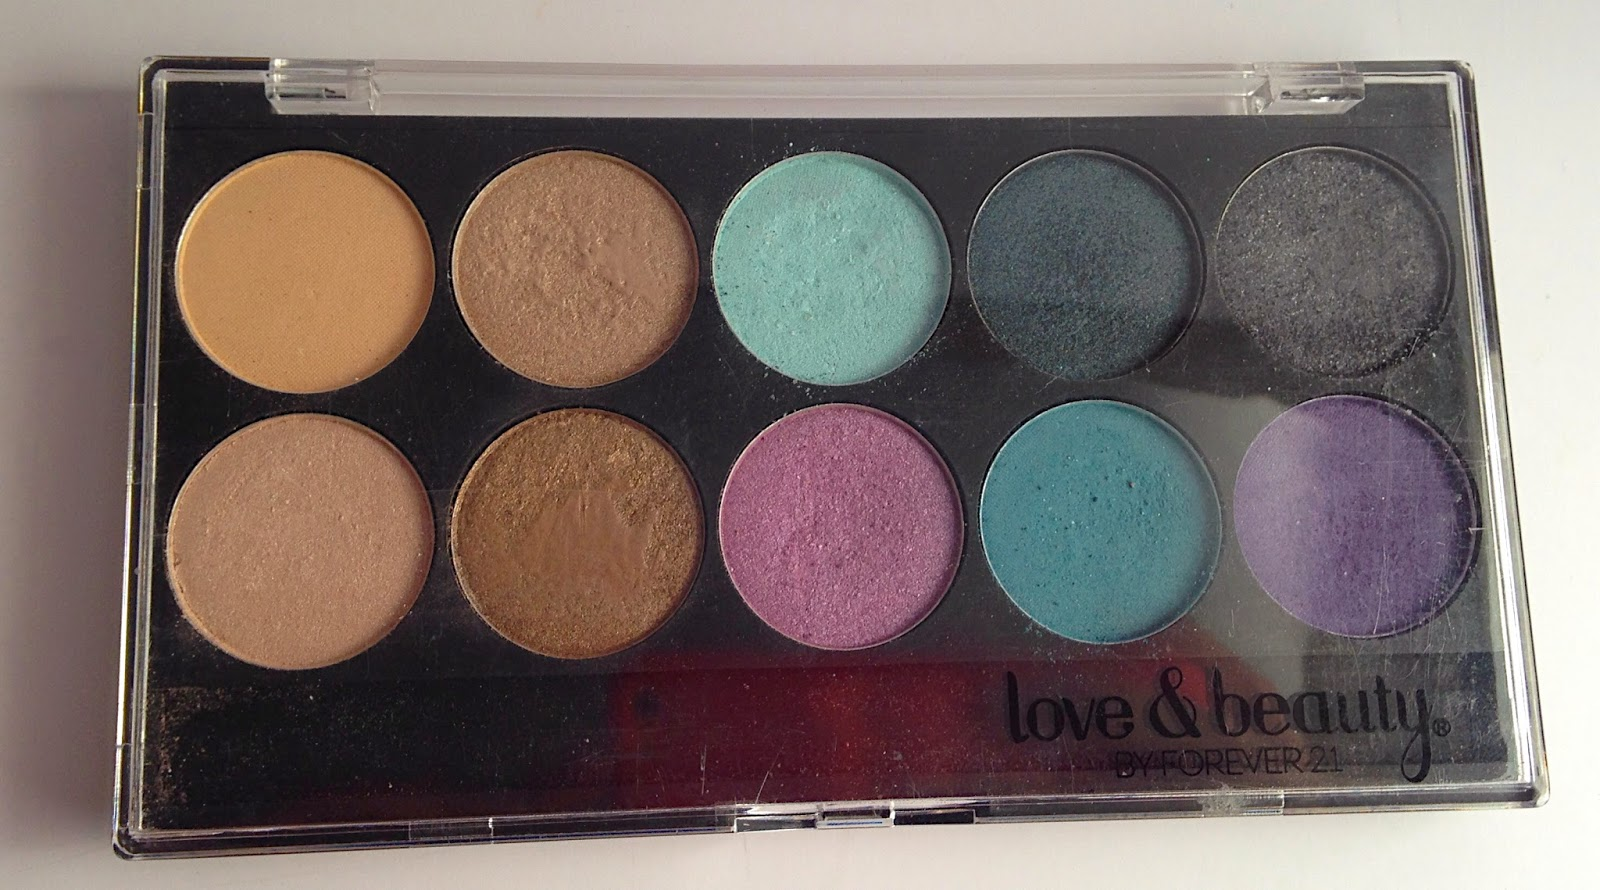 Forever 21 Love and beauty eye shadow palette